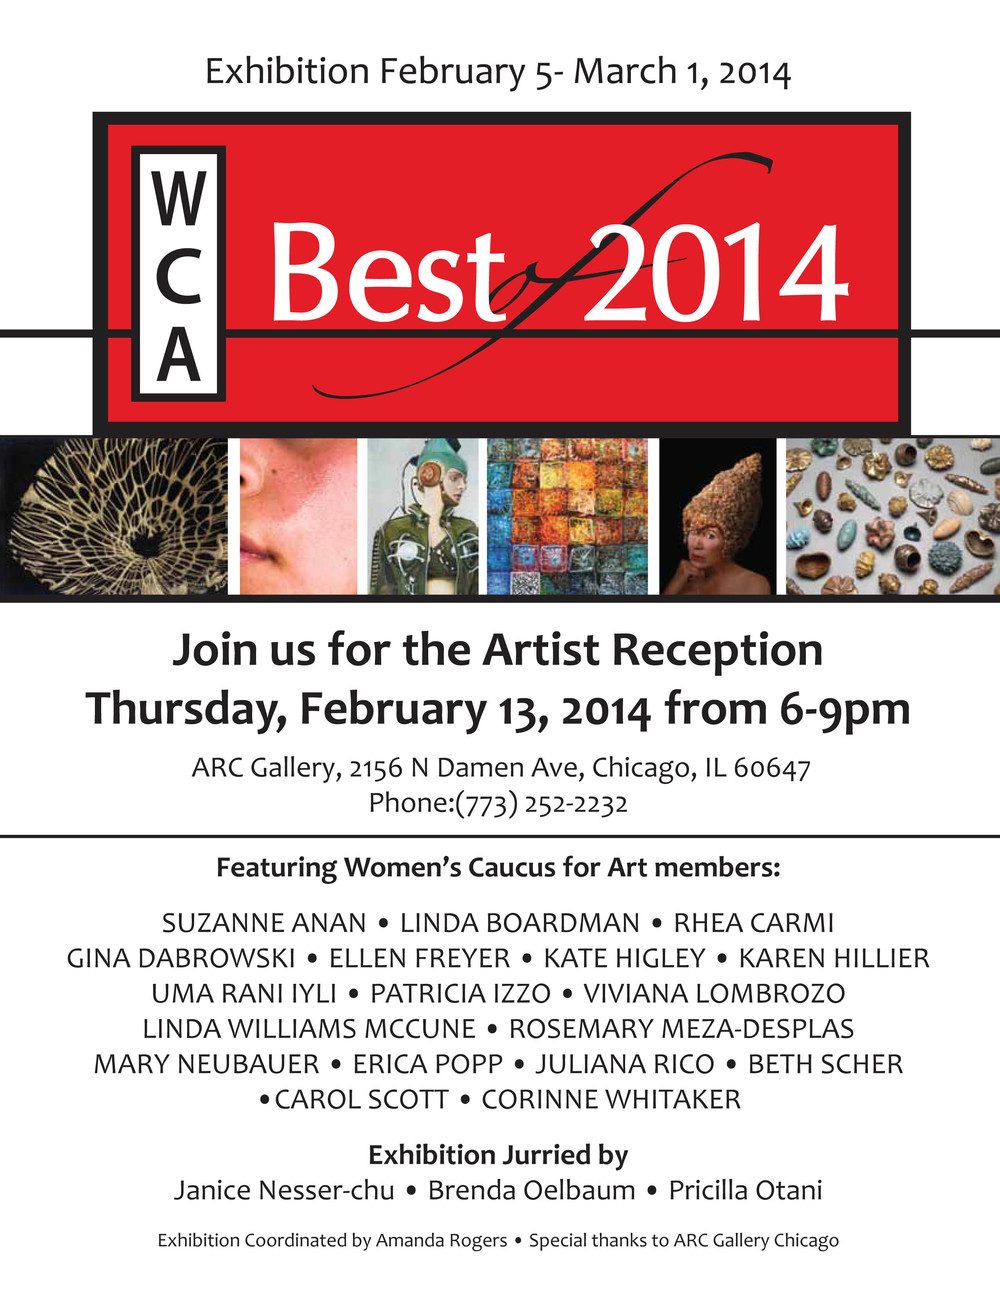 Women's Caucus for the Arts Best of 2014 February 5, 2014- March 1, 2014.  ARC Gallery, Chicago, IL